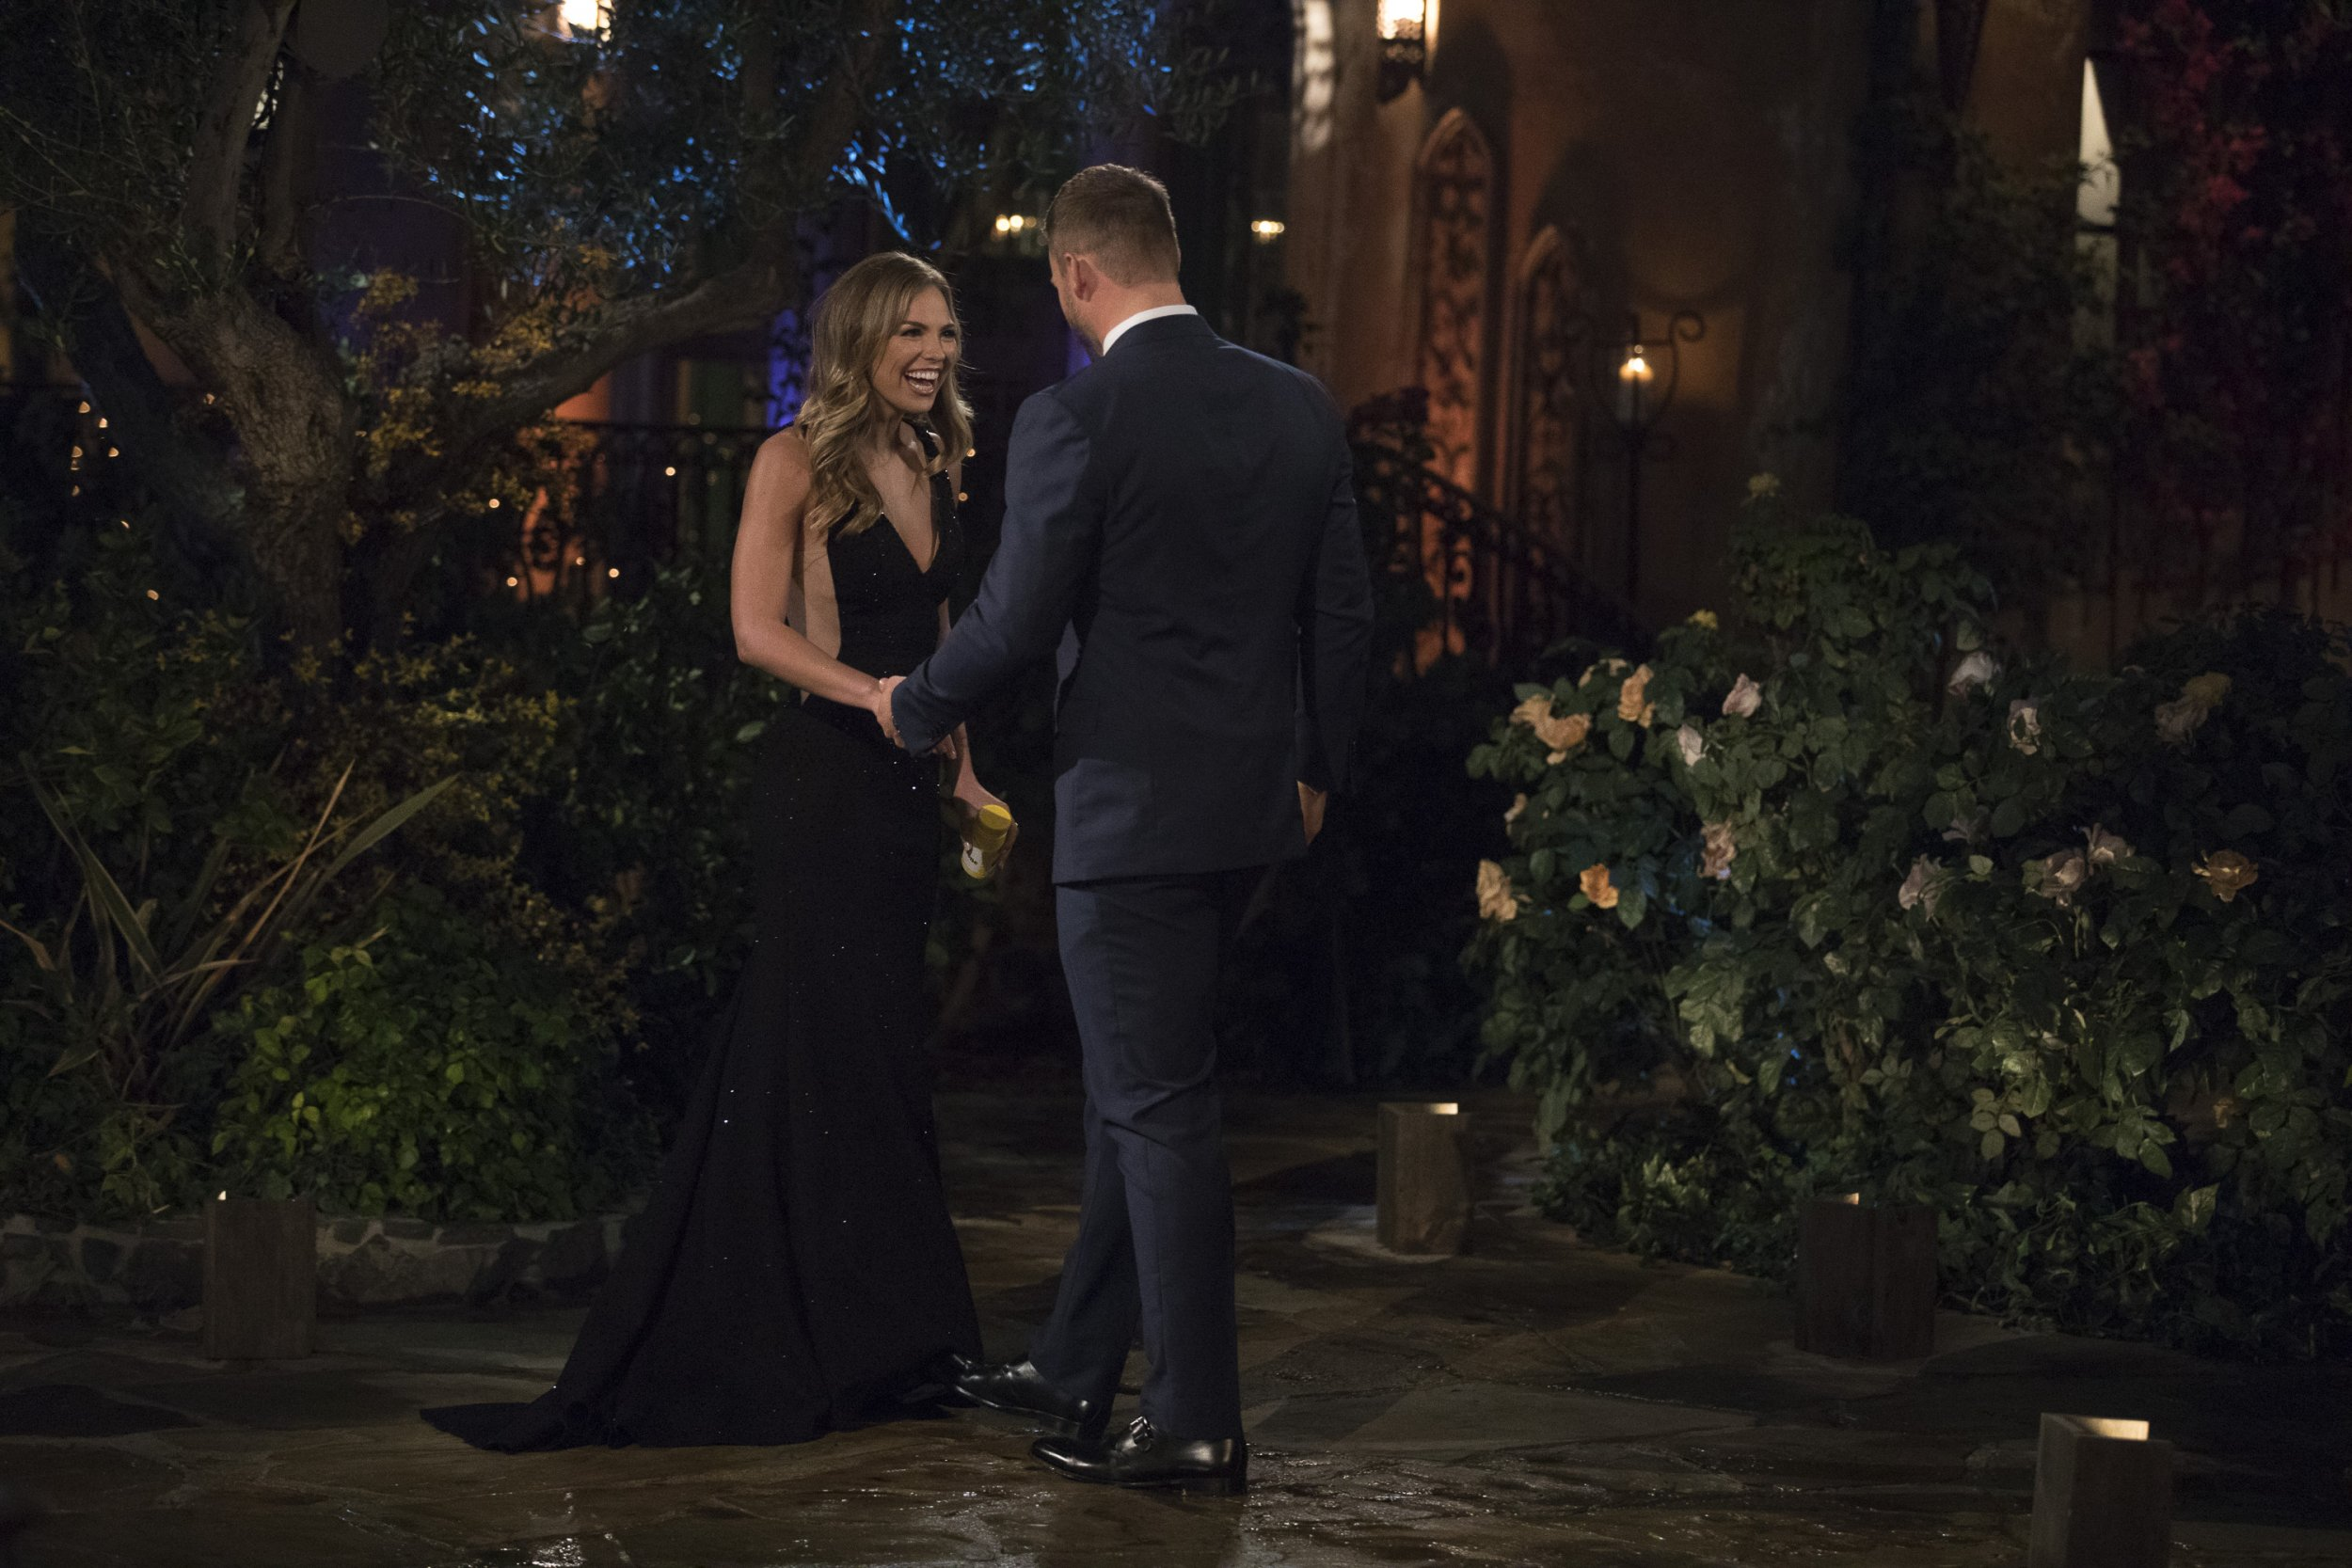 Hannah Brown Announced As The Next Bachelorette, Everything We Know About The Star of Season 15